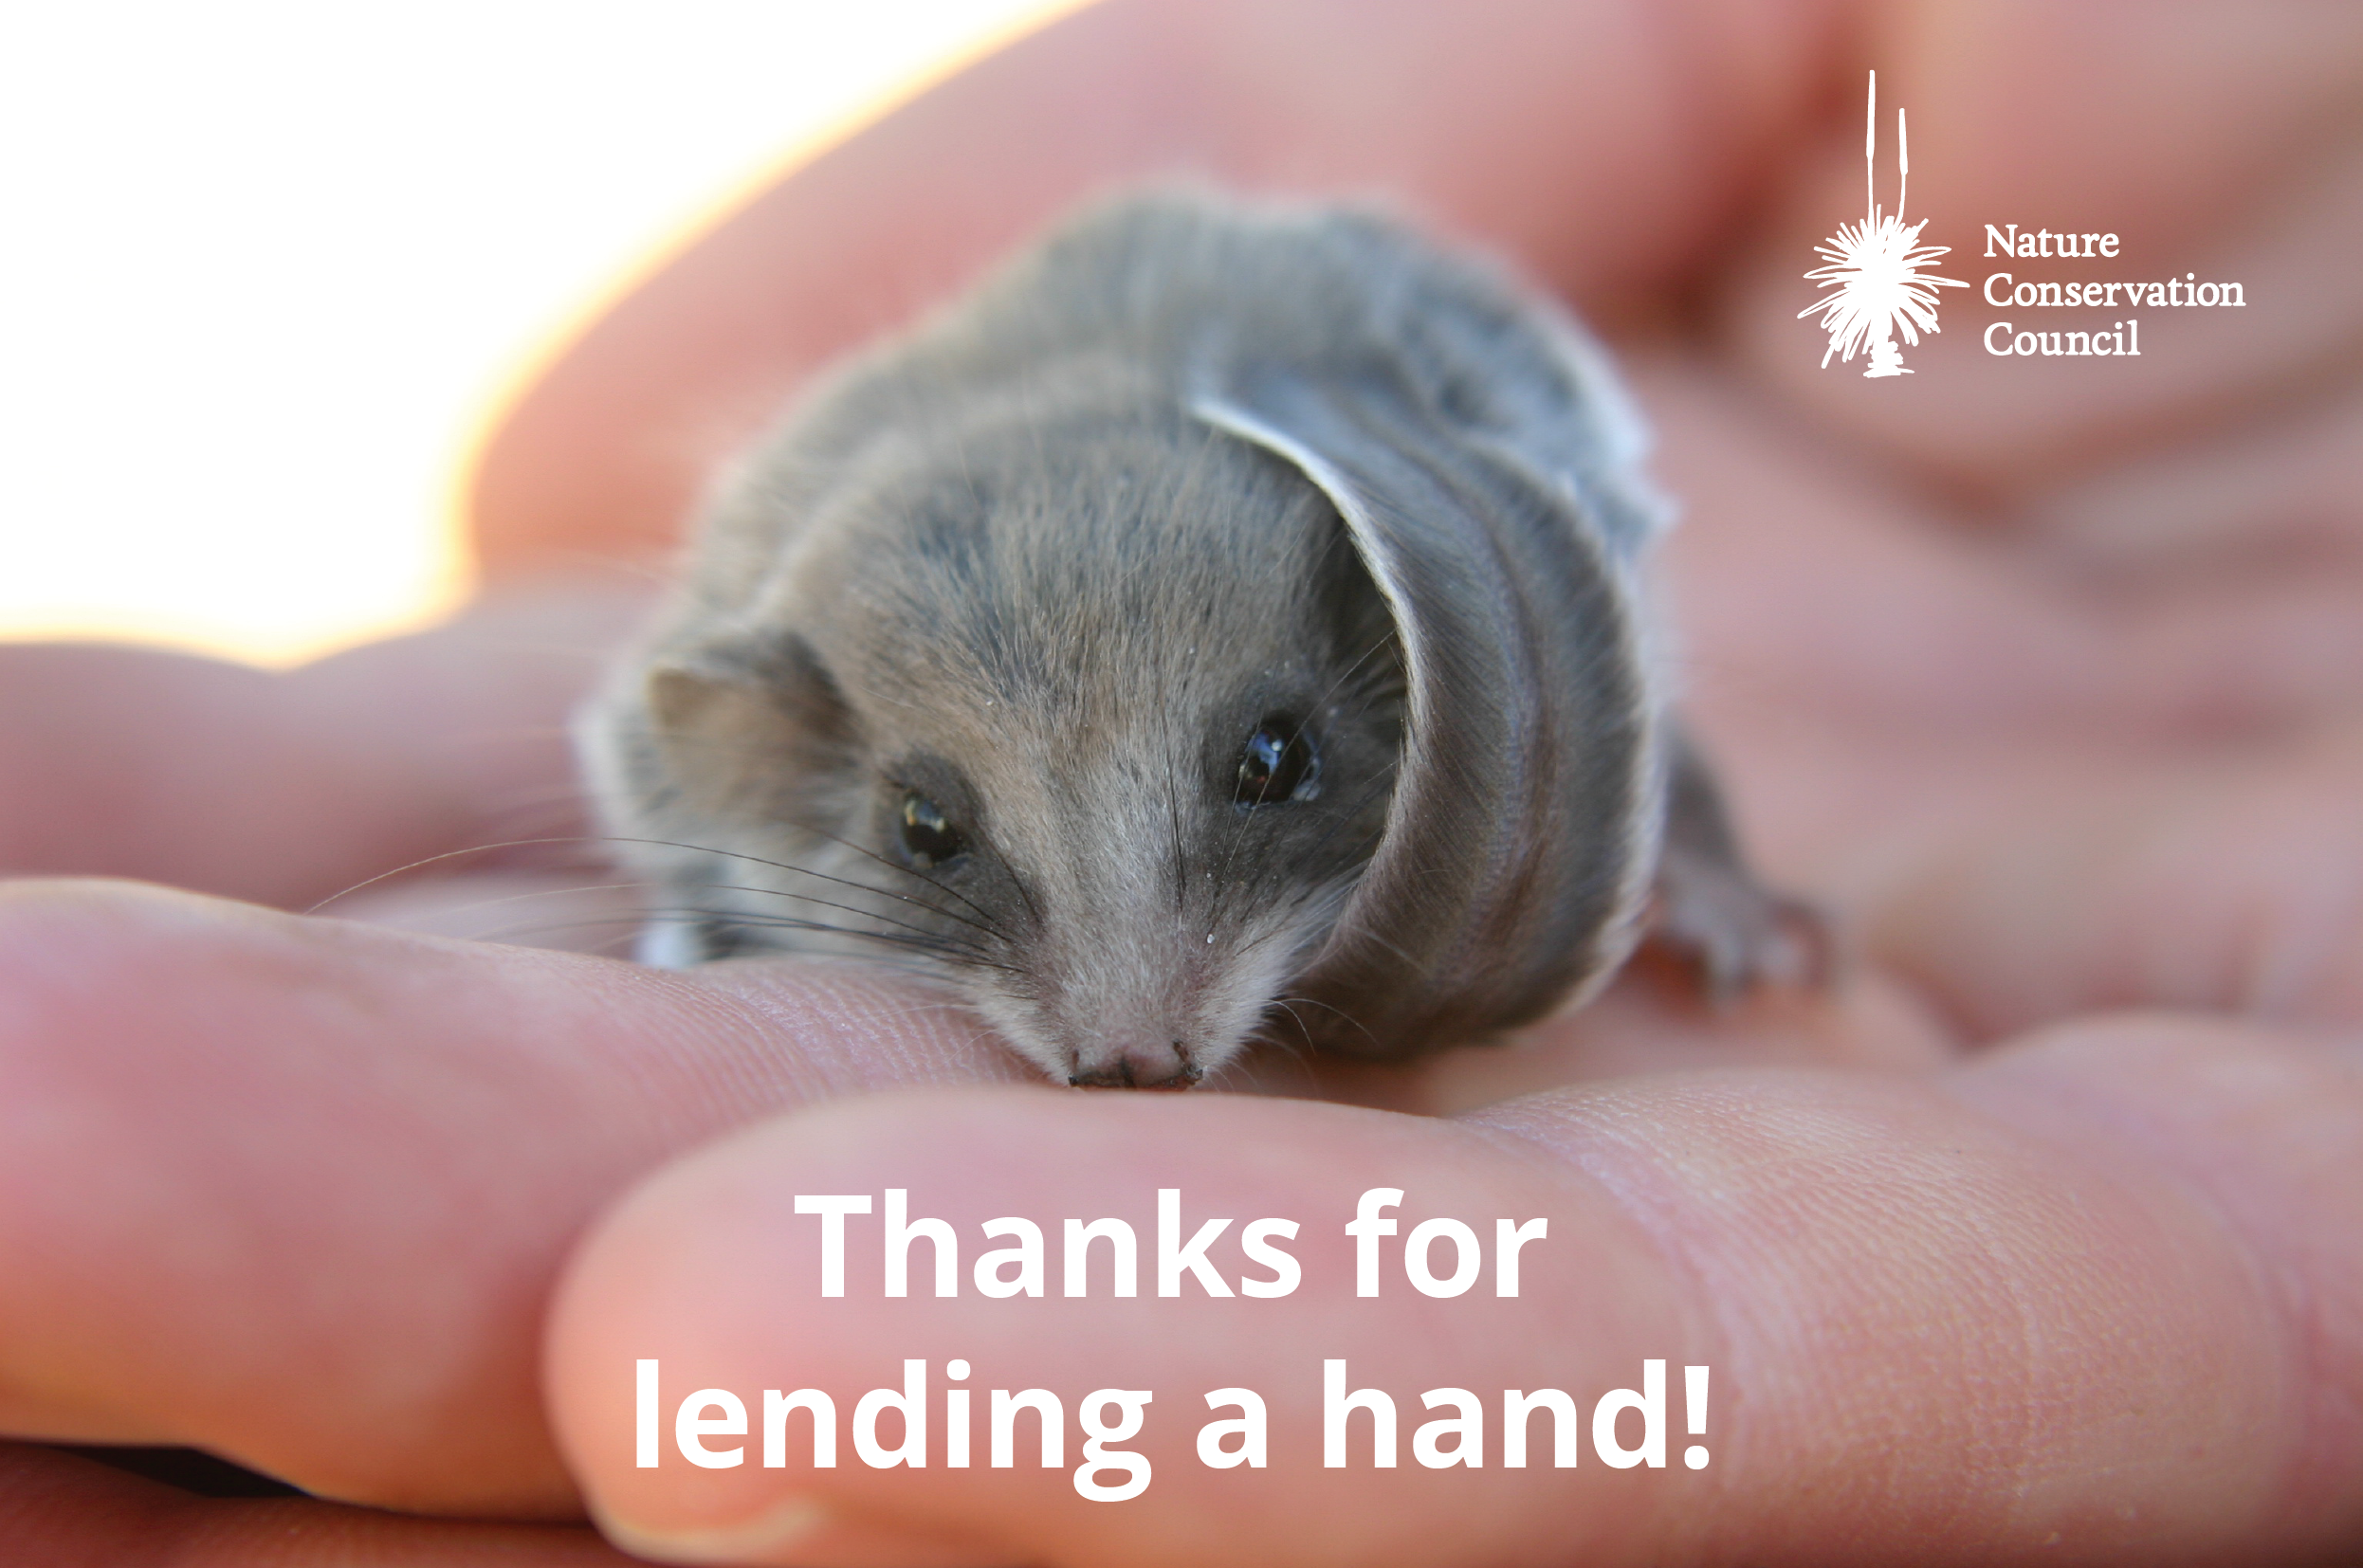 Thanks for lending a hand!